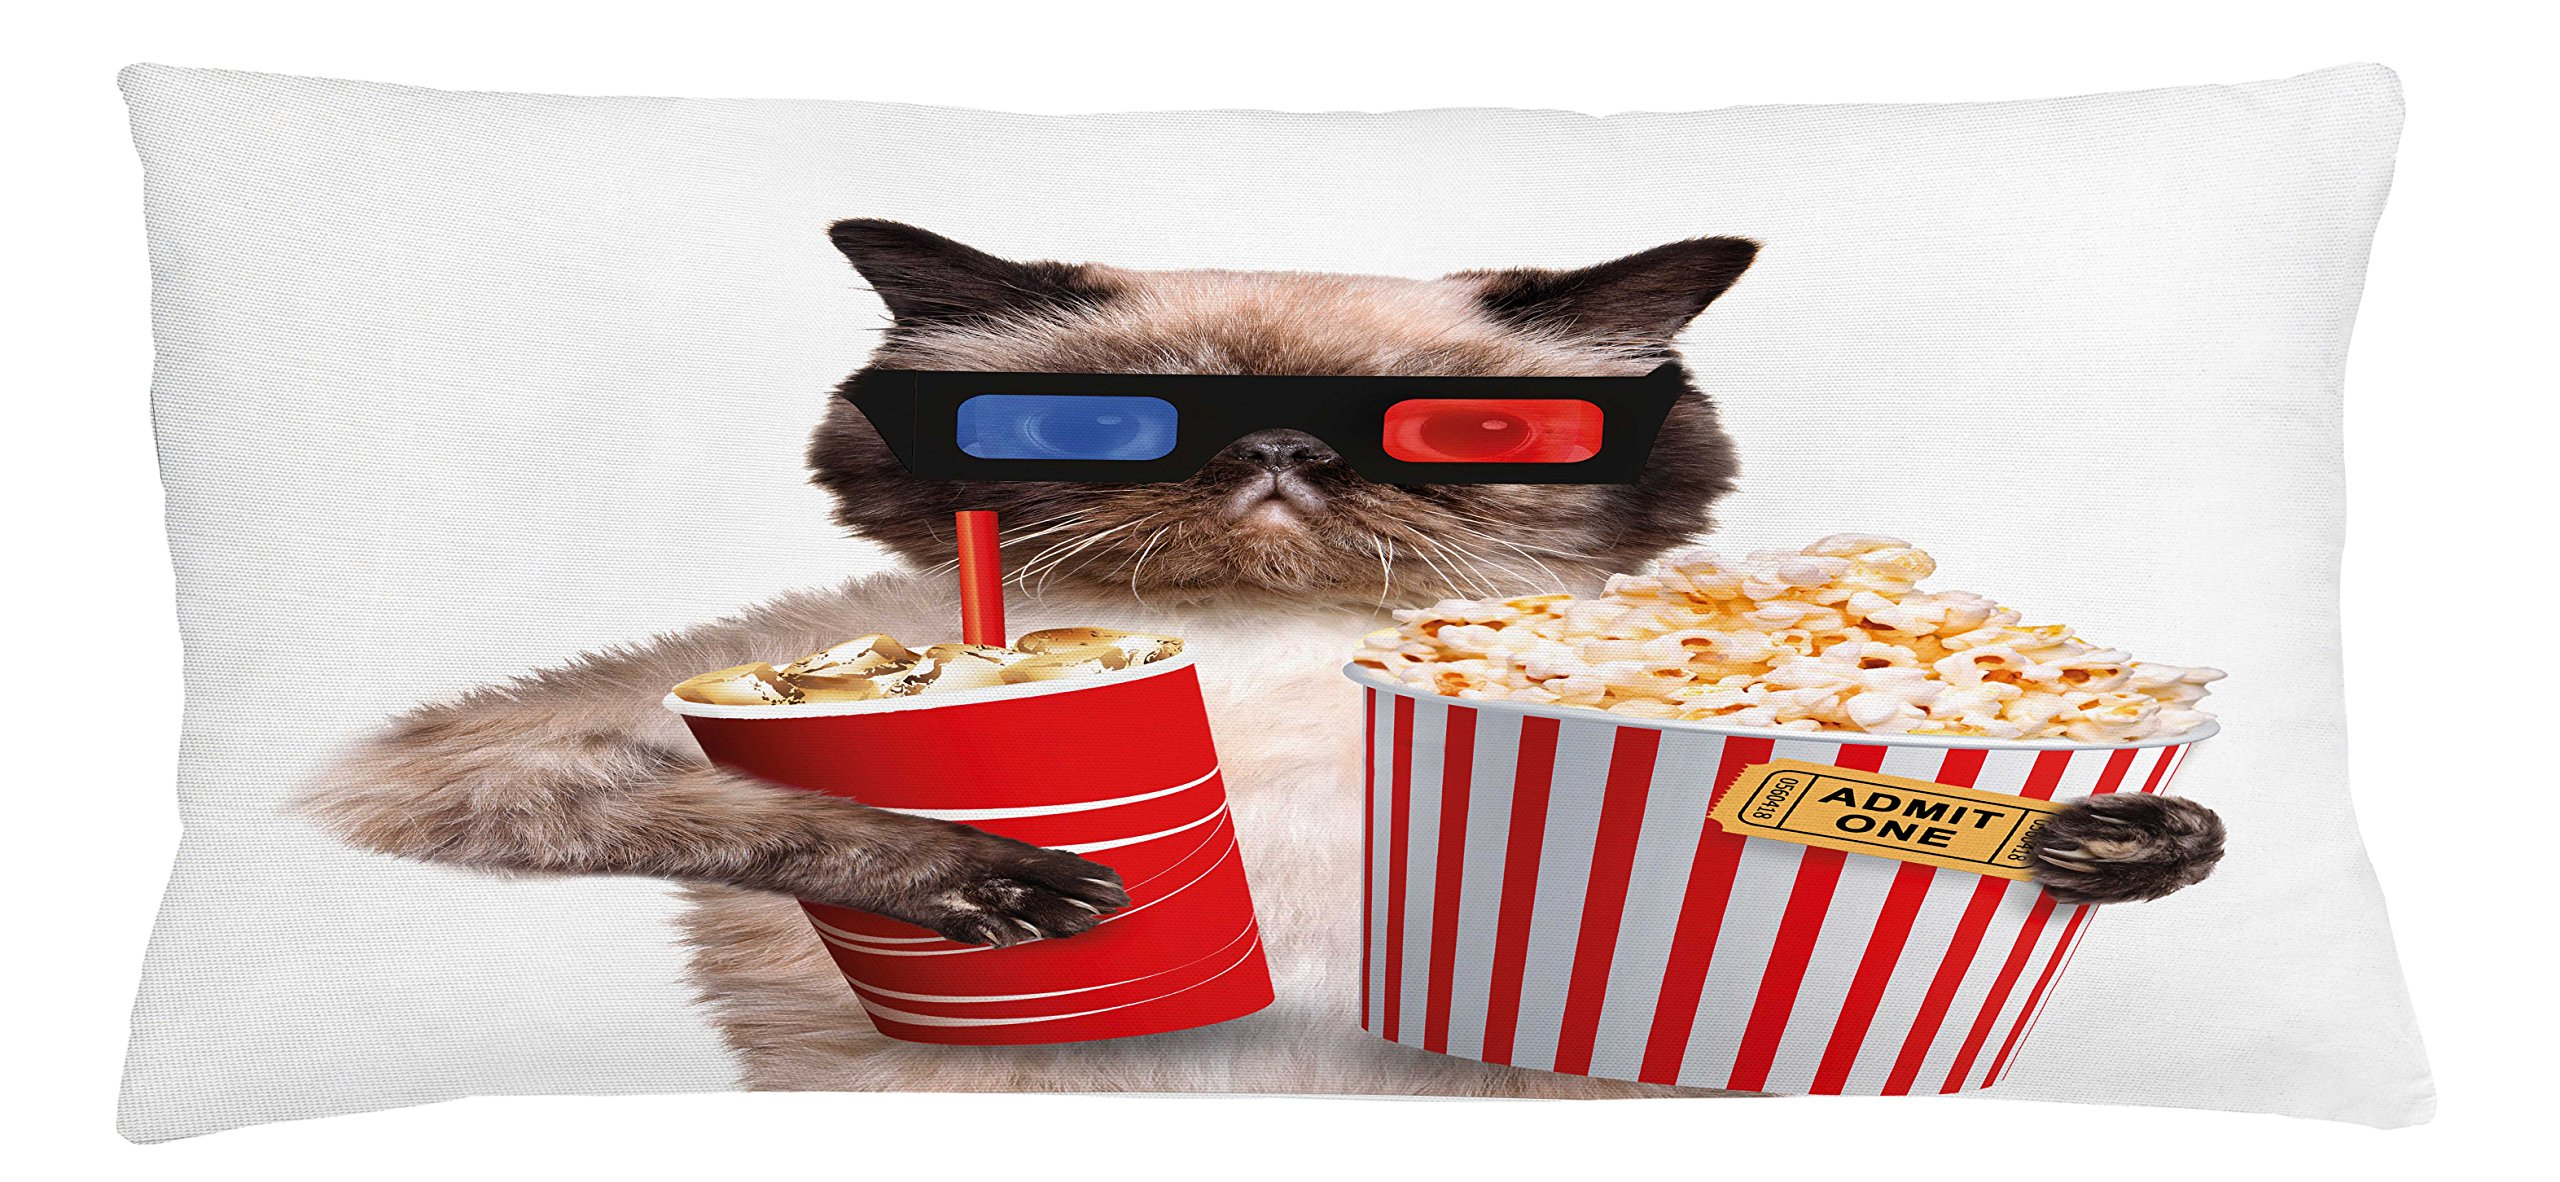 Ambesonne Movie Theater Throw Pillow Cushion Cover, Cat with Popcorn and Drink Watching Movie Glasses Entertainment Cinema Fun, Decorative Square Accent Pillow Case, 36 X 16 inches, Multicolor